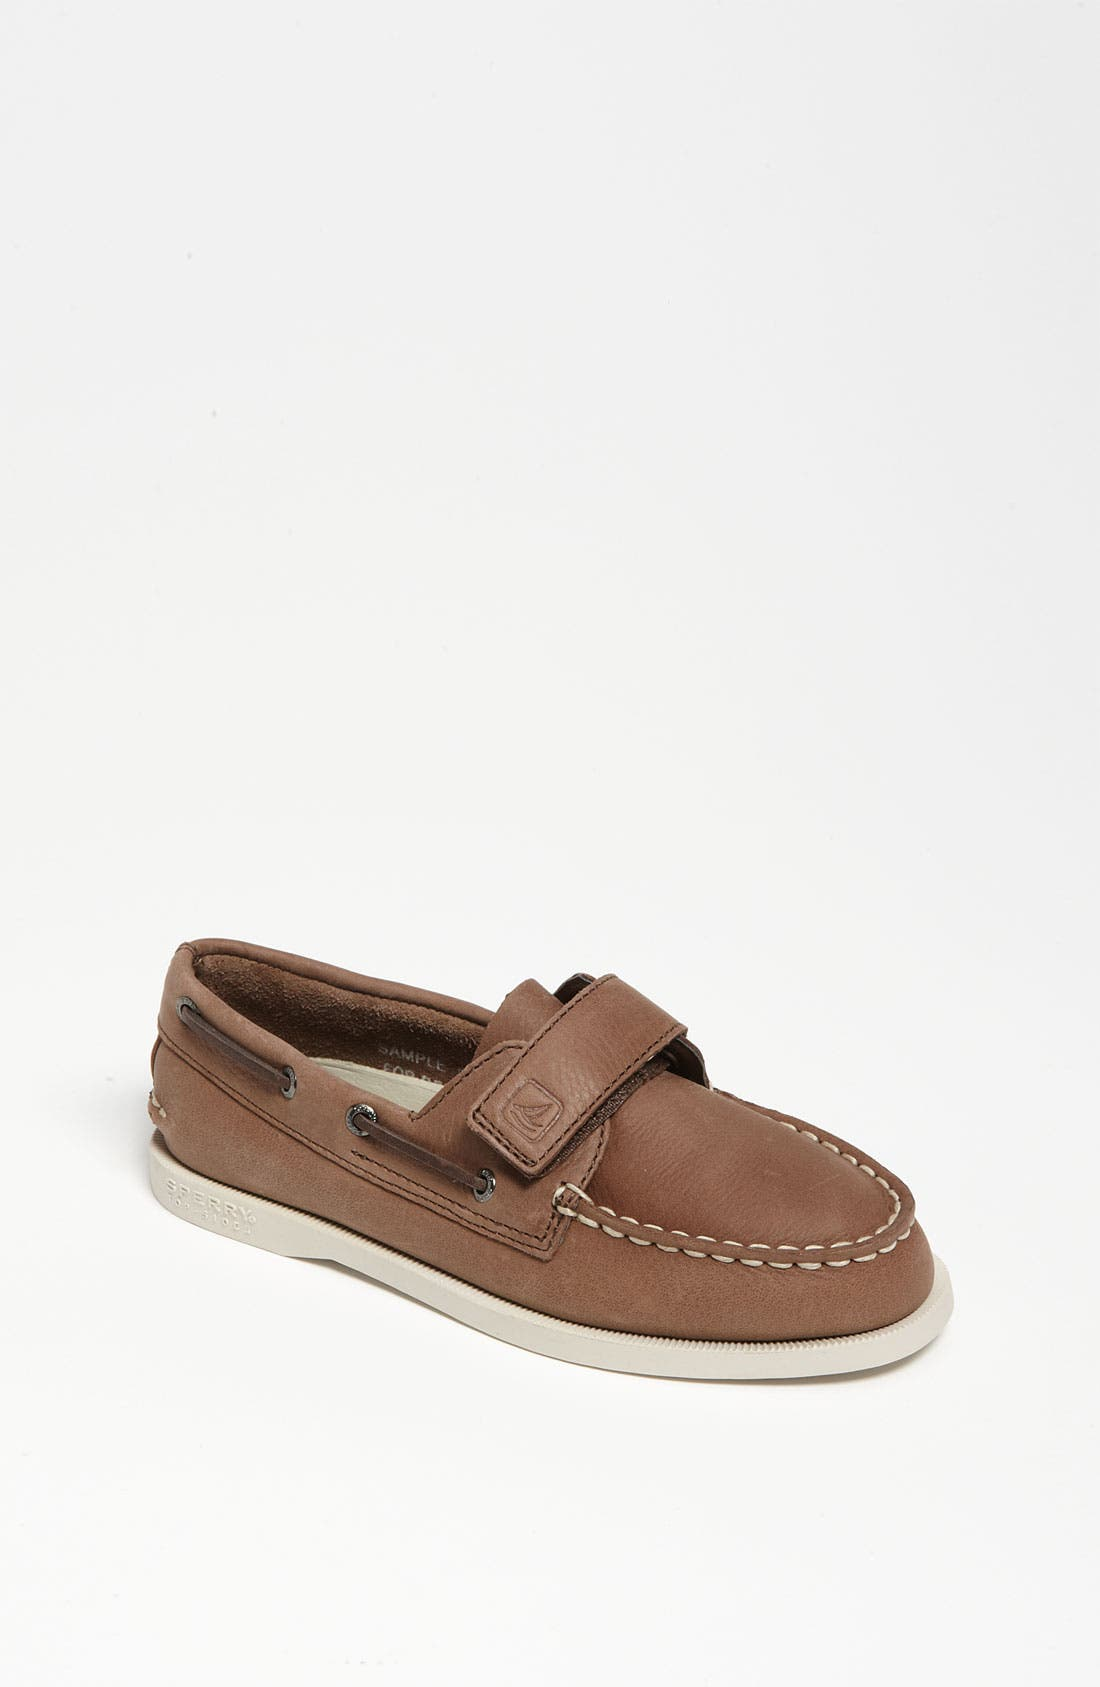 SPERRY KIDS, Sperry Top-Sider<sup>®</sup> Kids 'Authentic Original' Boat Shoe, Main thumbnail 1, color, BROWN